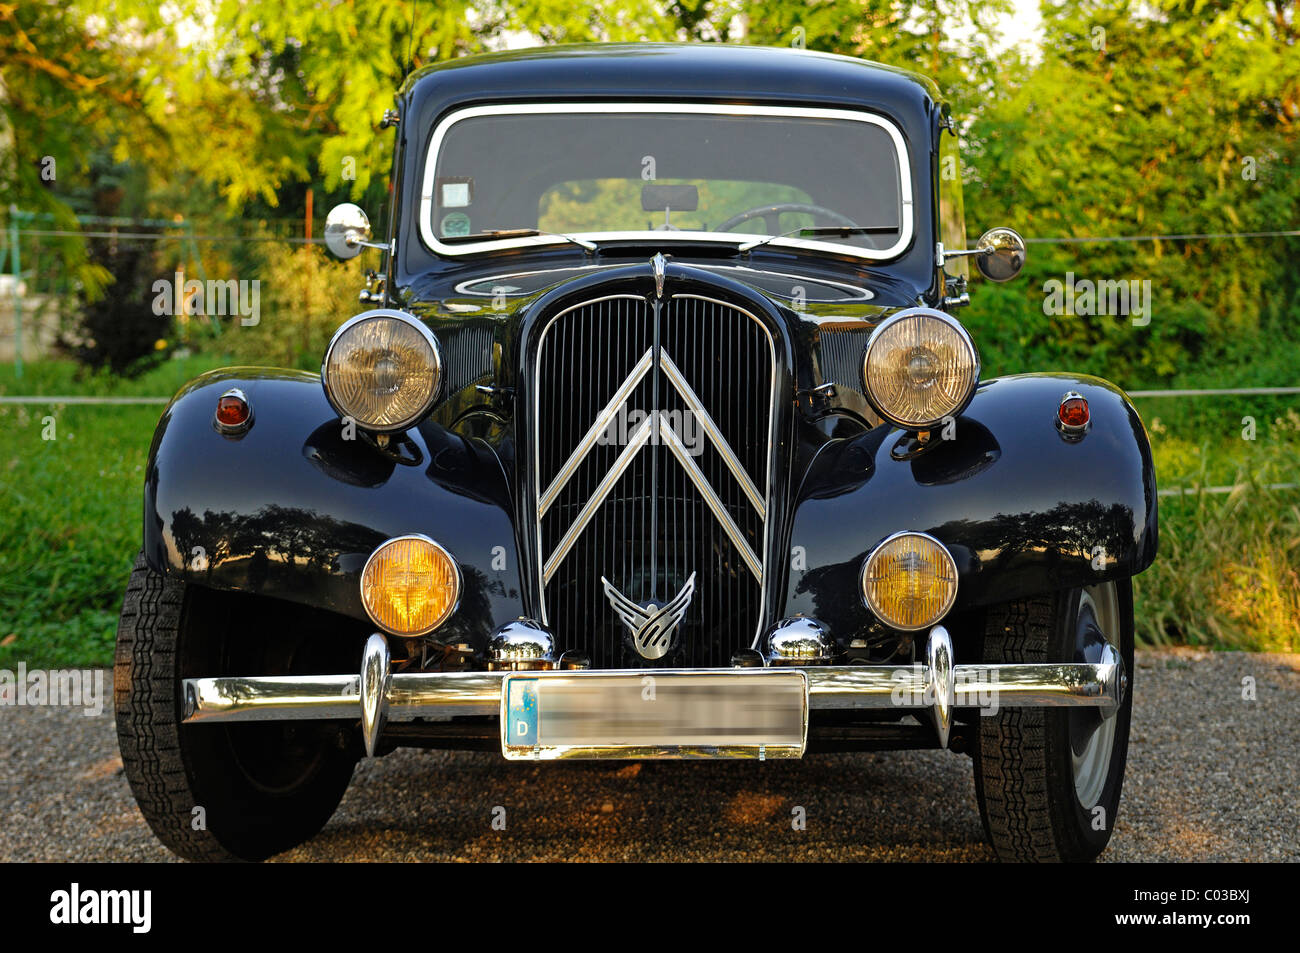 classic car  citroen 11 cv commercial  built 1955-56  41 kw  55 hp stock photo  34495962